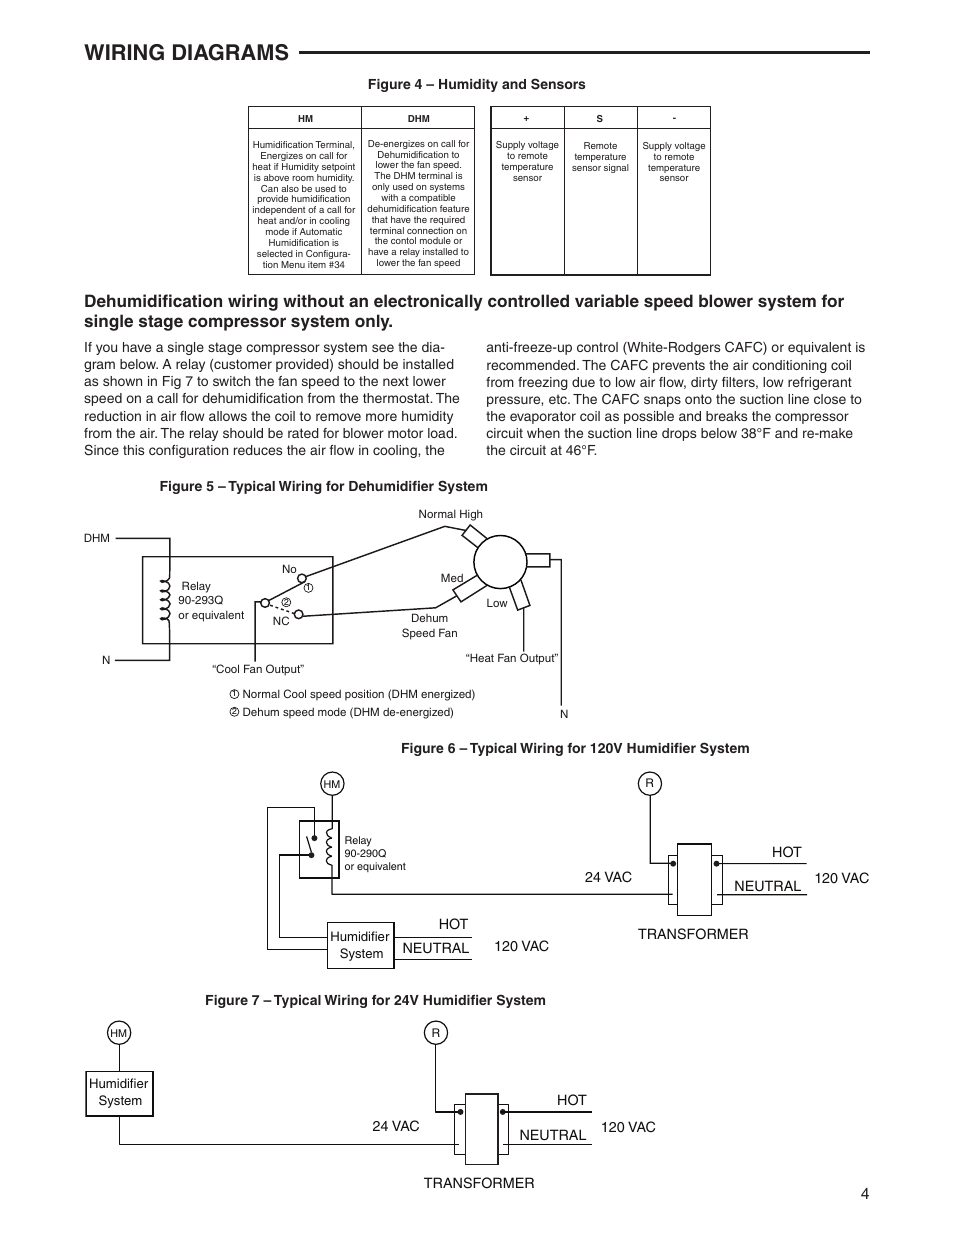 White Rodgers Thermostat Wiring Diagram 1F86-244 from schematron.org